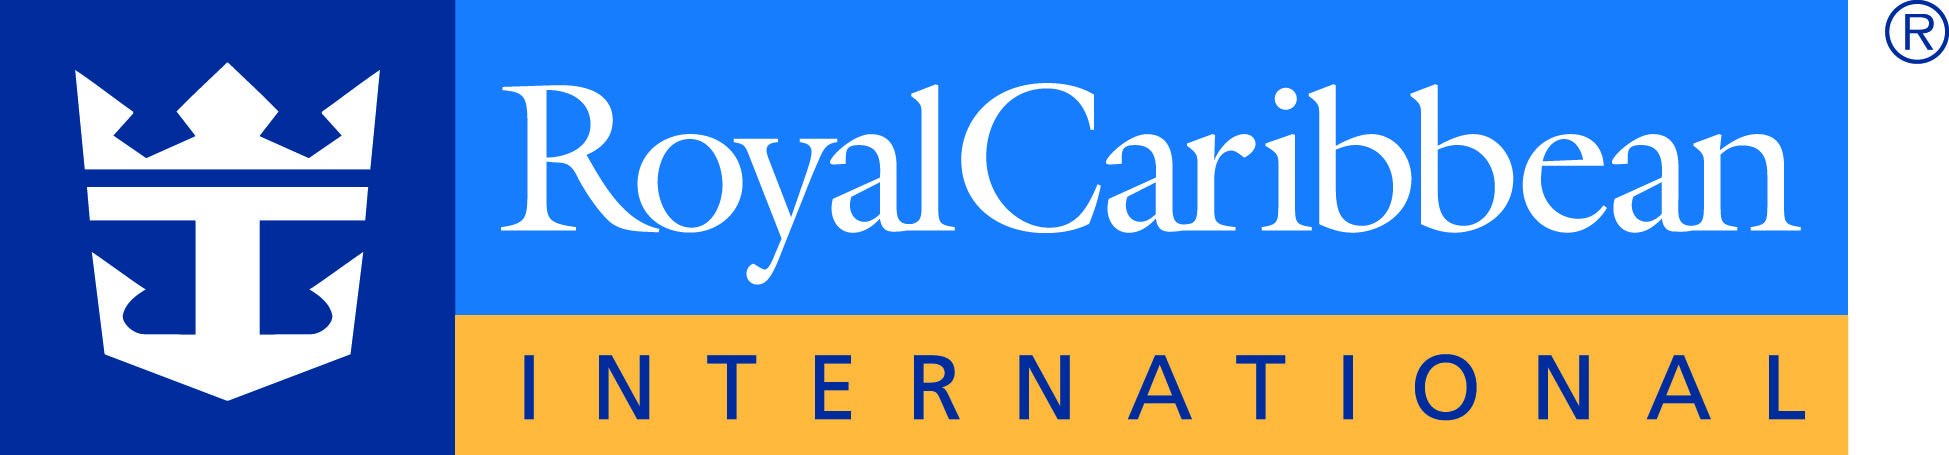 Royal Caribbean Cruises Logo Desktop Backgrounds for HD 1949x455